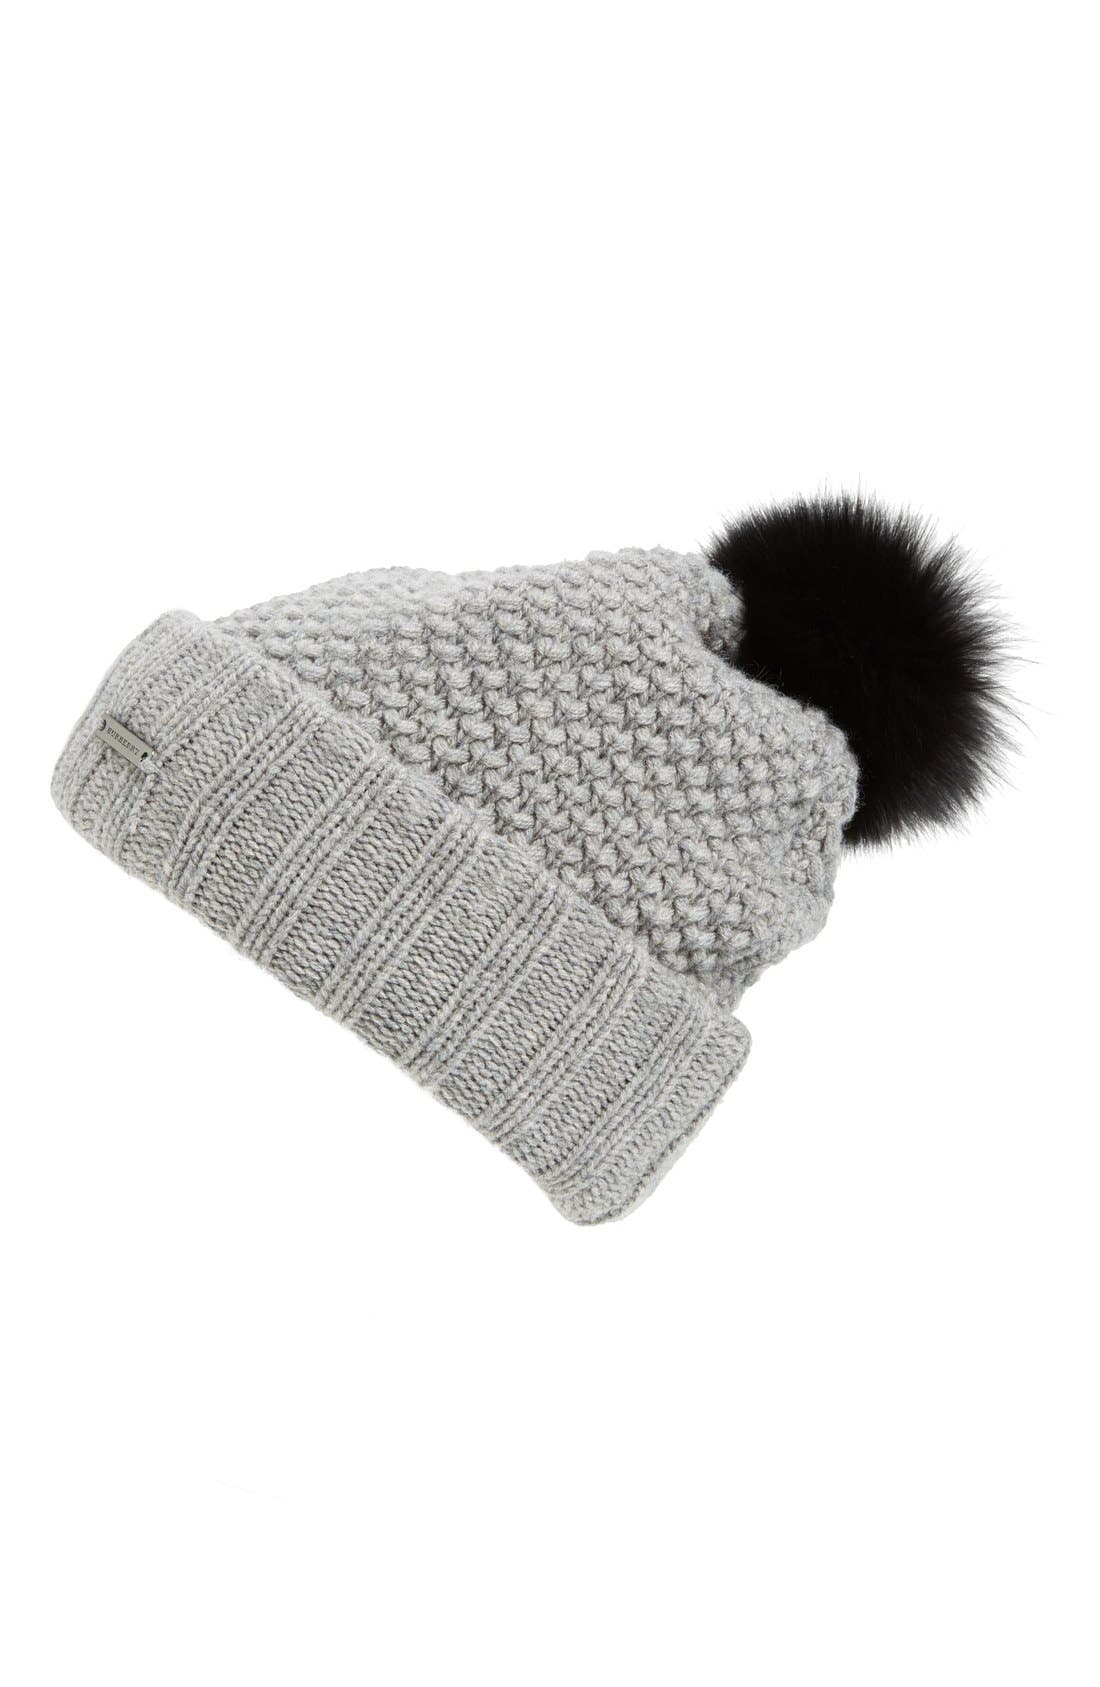 Alternate Image 1 Selected - Burberry Wool & Cashmere Beanie with Genuine Fox Fur Pom